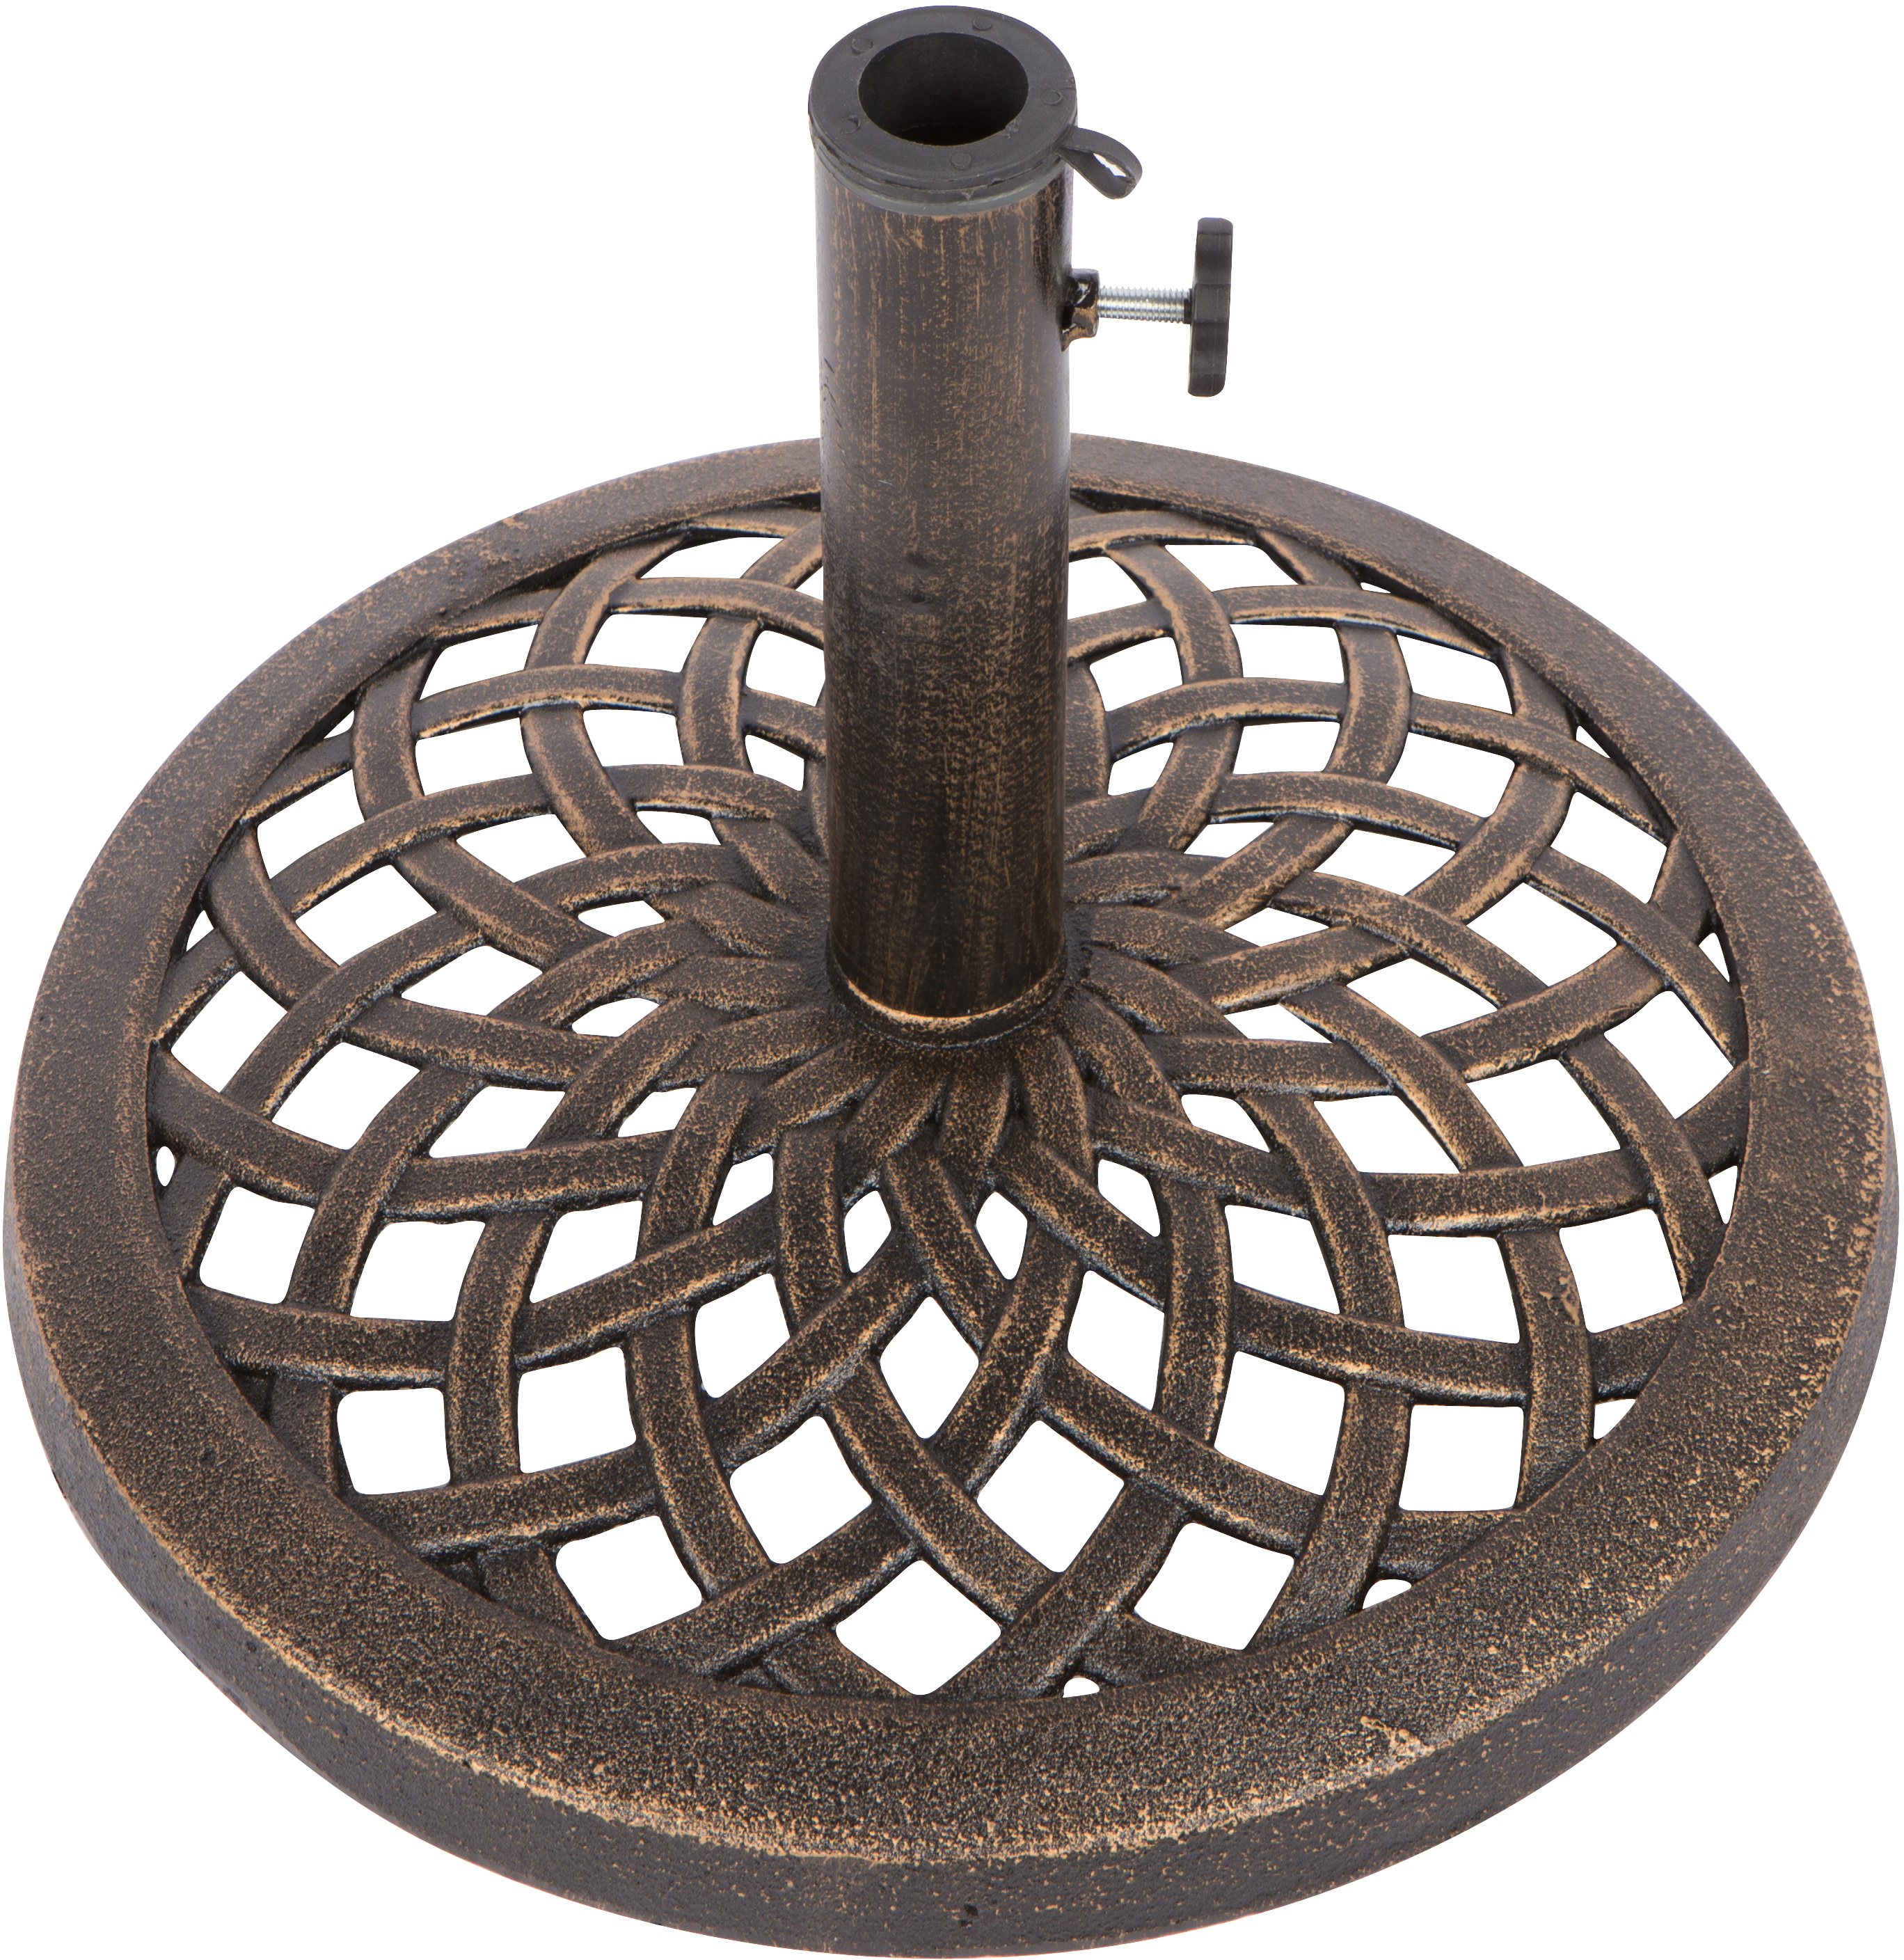 Cast Iron Umbrella Base - 17.7 Inch Diameter by Trademark Innovations (Black Finish)